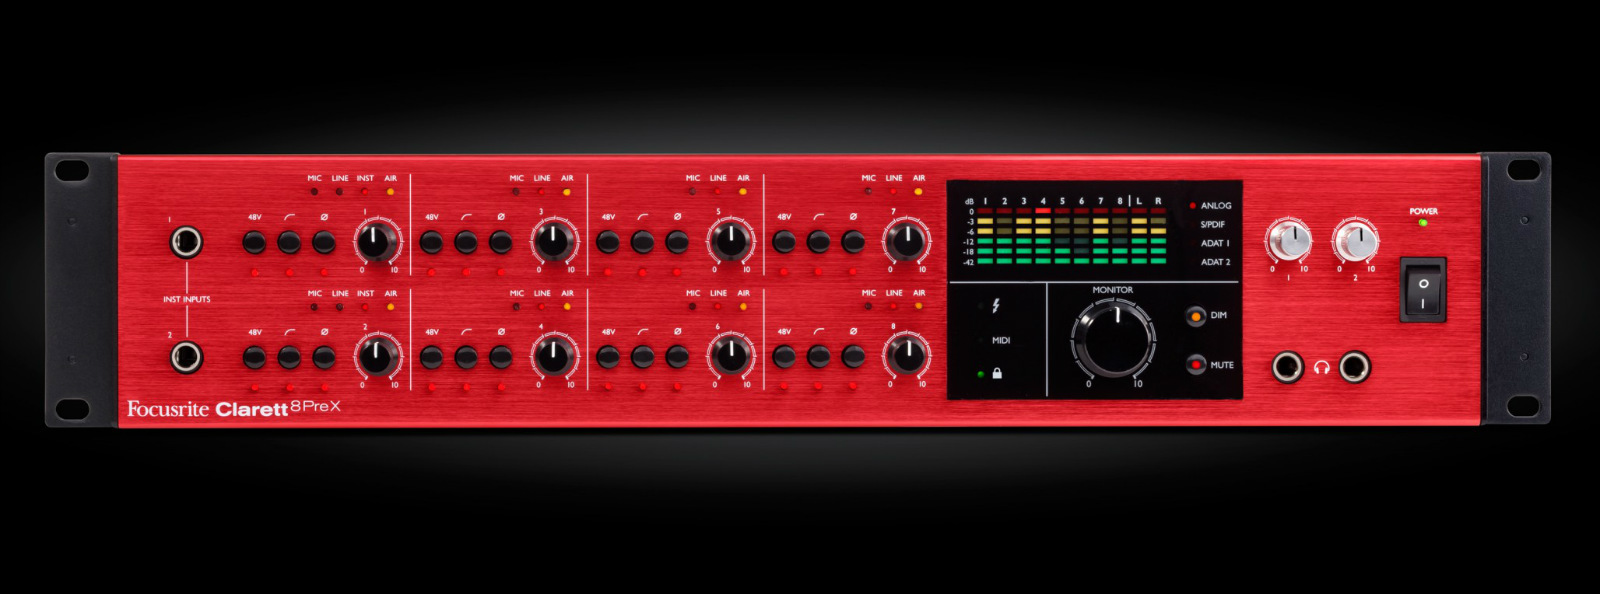 Focusrite Clarett 8PreX 26-In/28-Out Thunderbolt A